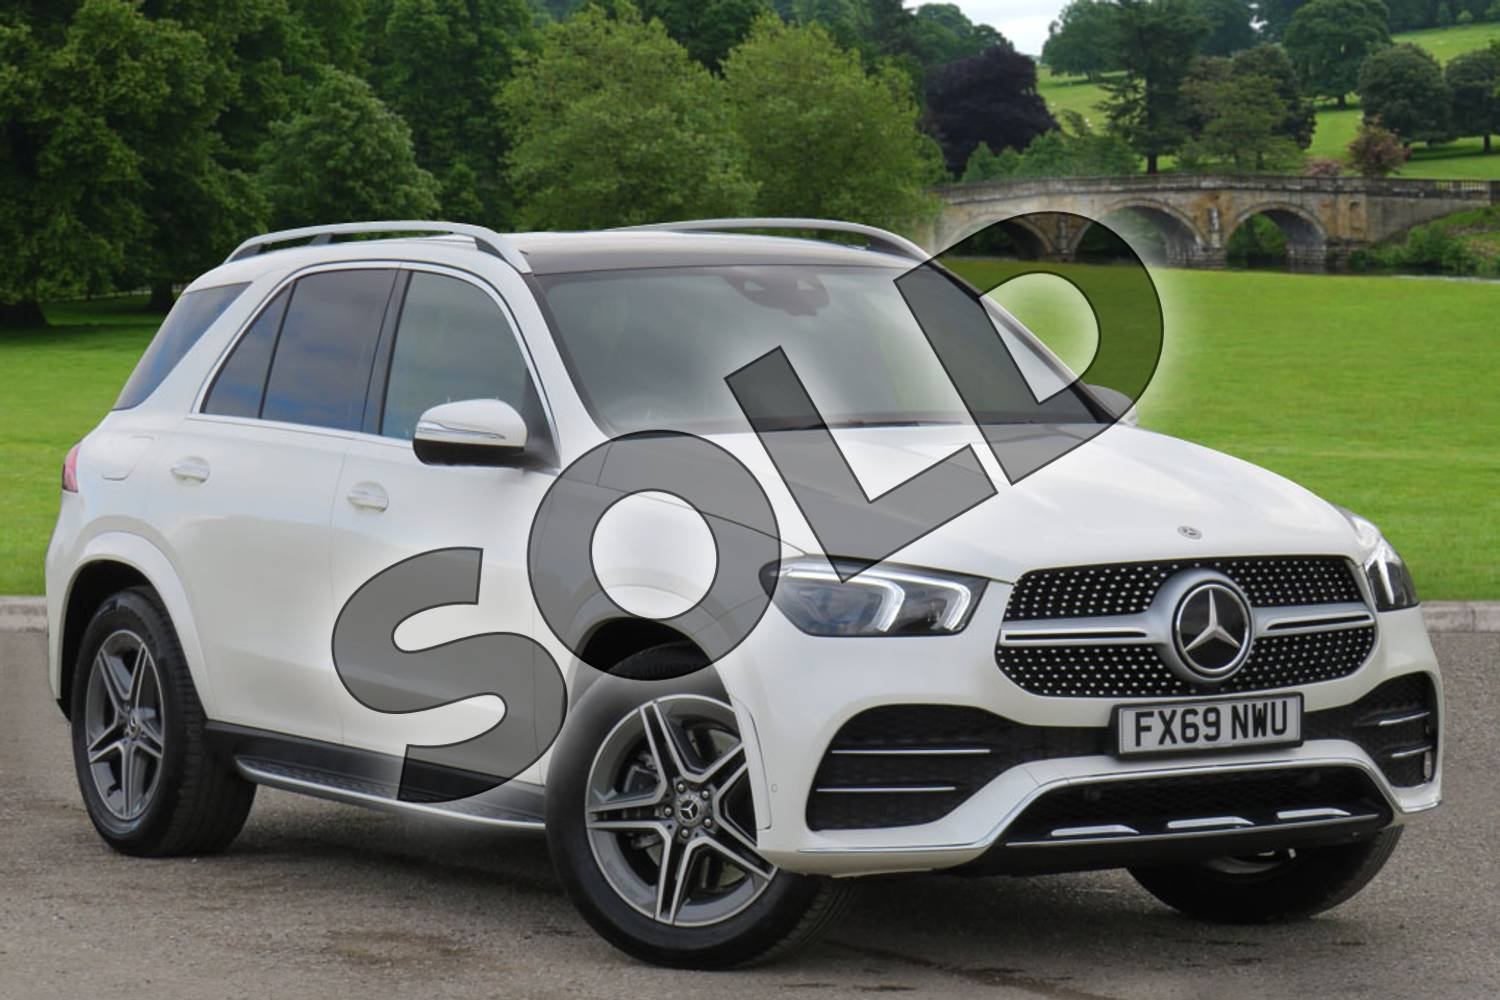 2019 Mercedes-Benz GLE Diesel Estate Diesel GLE 300d 4Matic AMG Line Prem + 5dr 9G-Tron (7 St) in designo diamond white bright at Mercedes-Benz of Boston